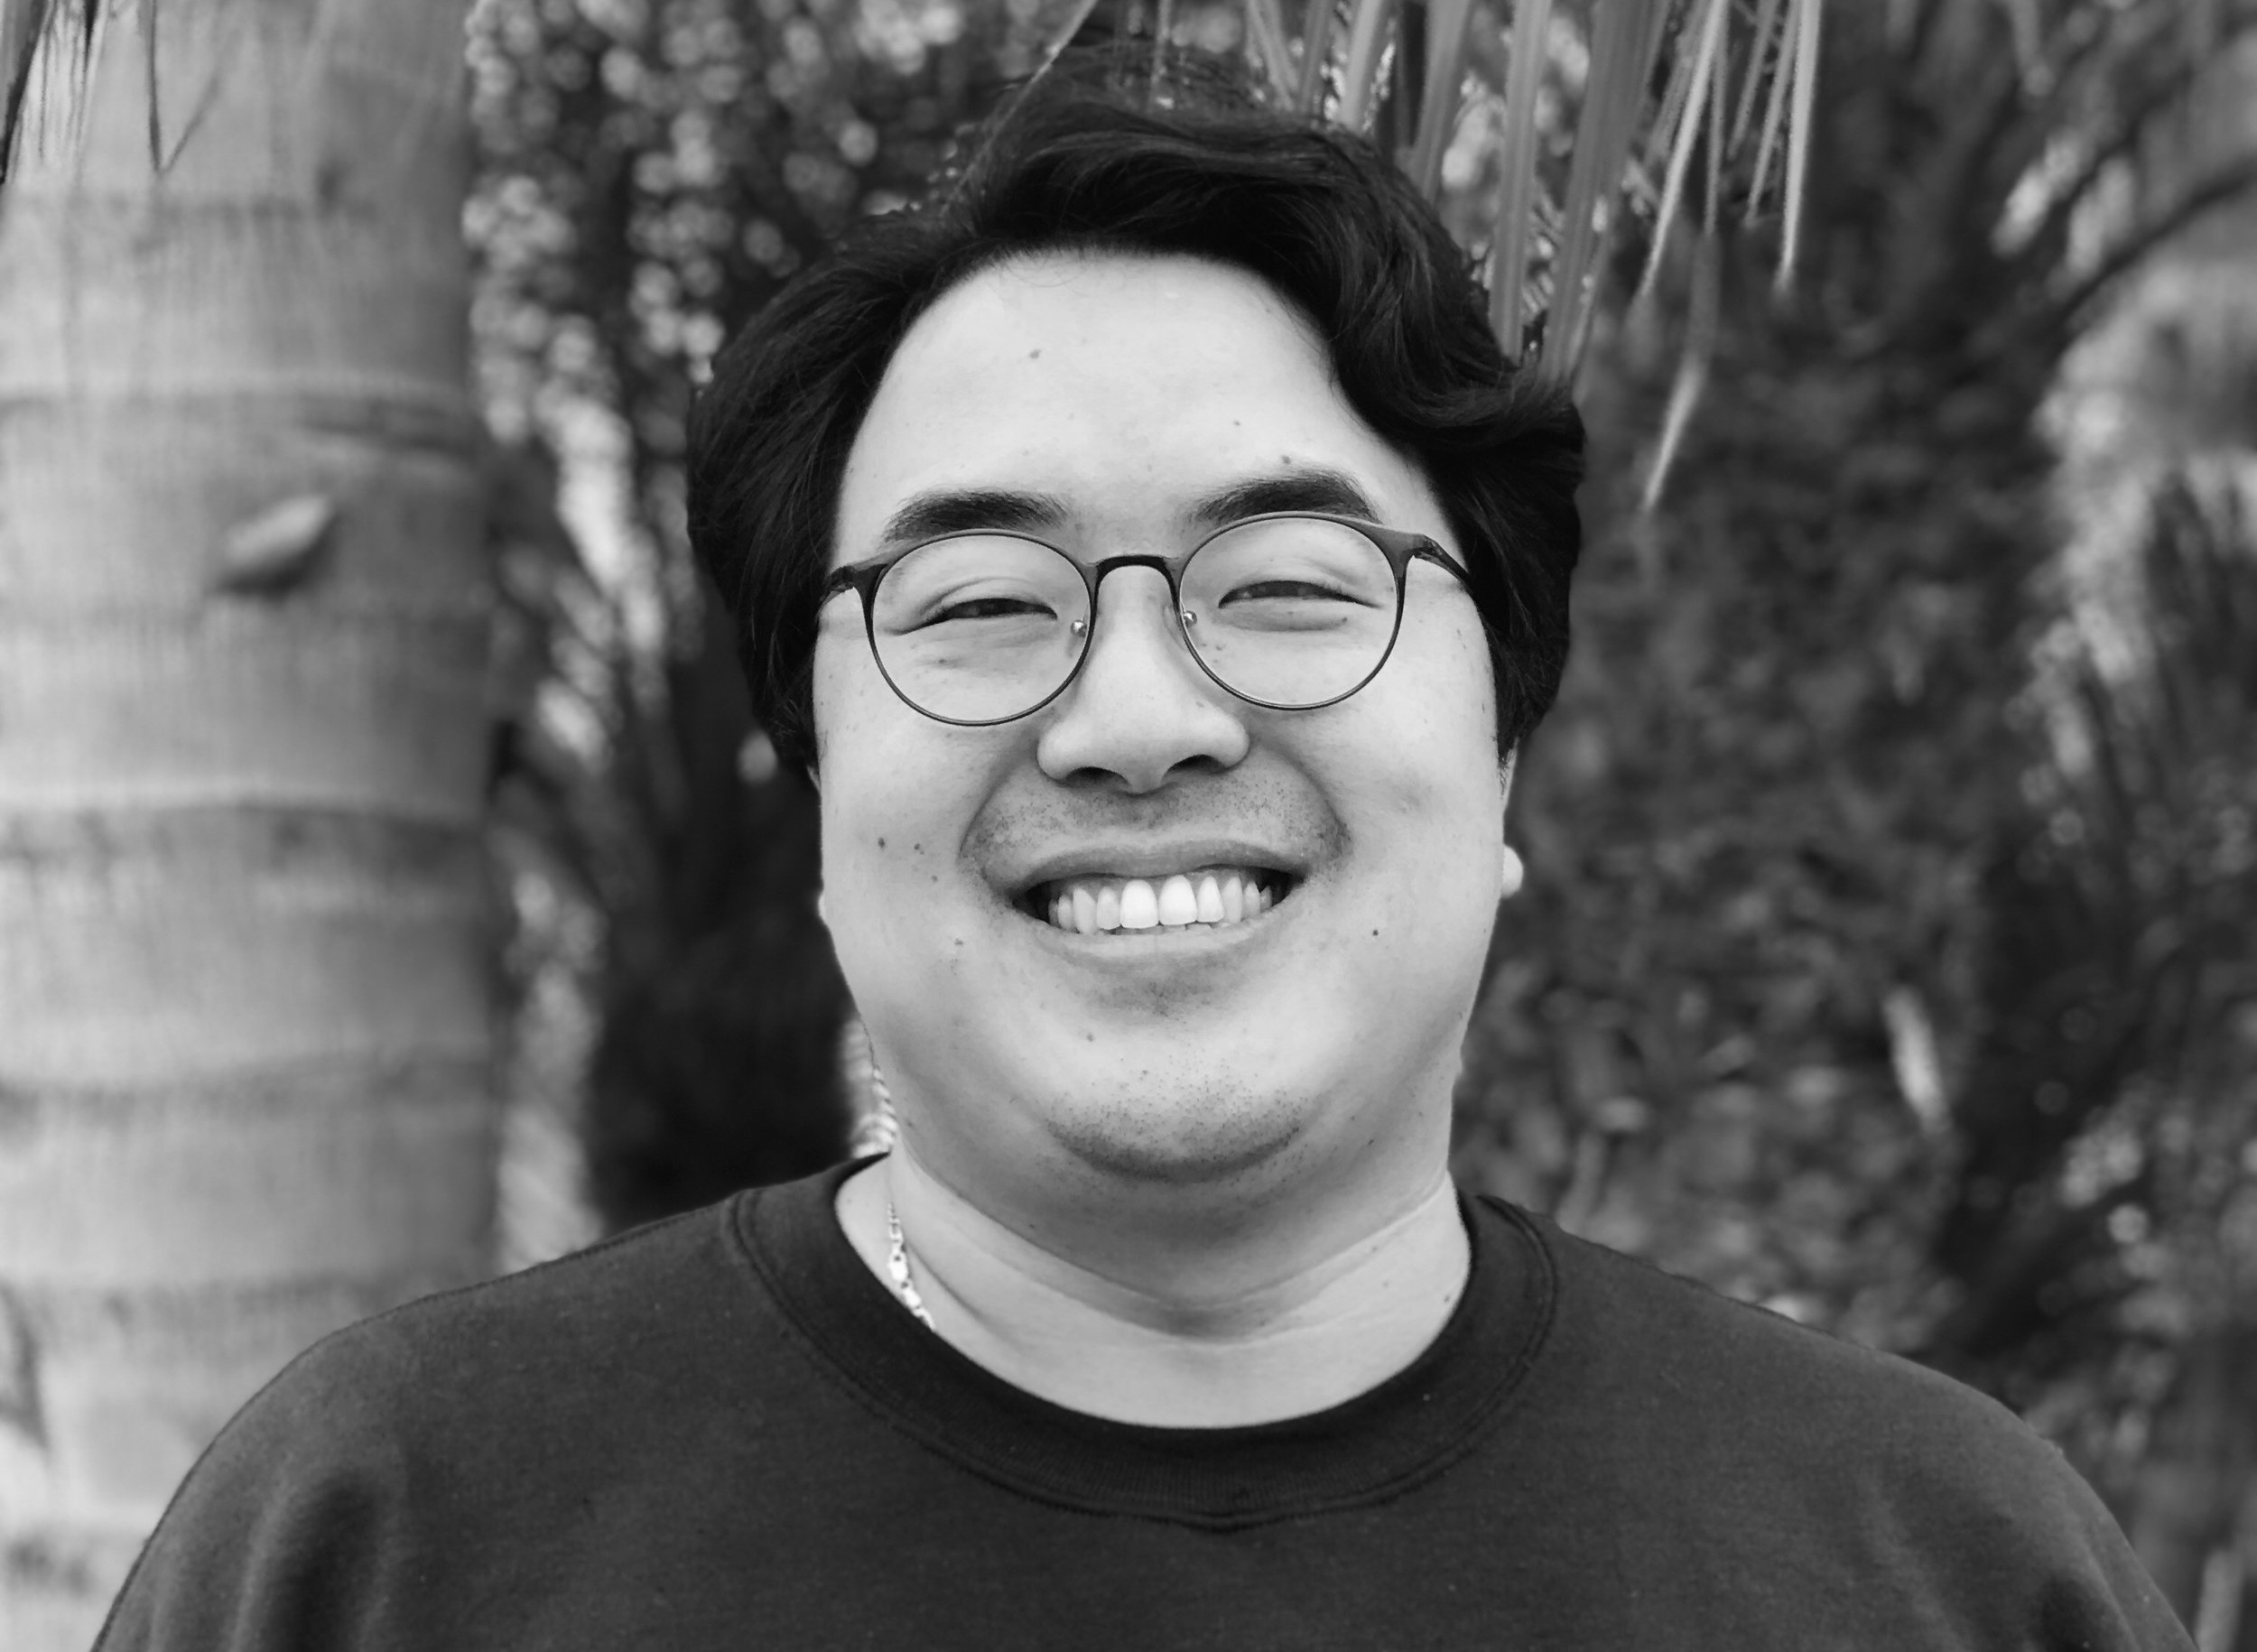 - Jonathan Kim will serve as the Worship Director, coming to Trinity with 10+ years of experience as a worship leader. He received his Master's in Theology from Talbot School of Theology, and his Bachelor's in Music from Biola University.  Jonathan lives in Cardiff where he enjoys the proximity of the beaches in North County.Connect with Jonathan here.